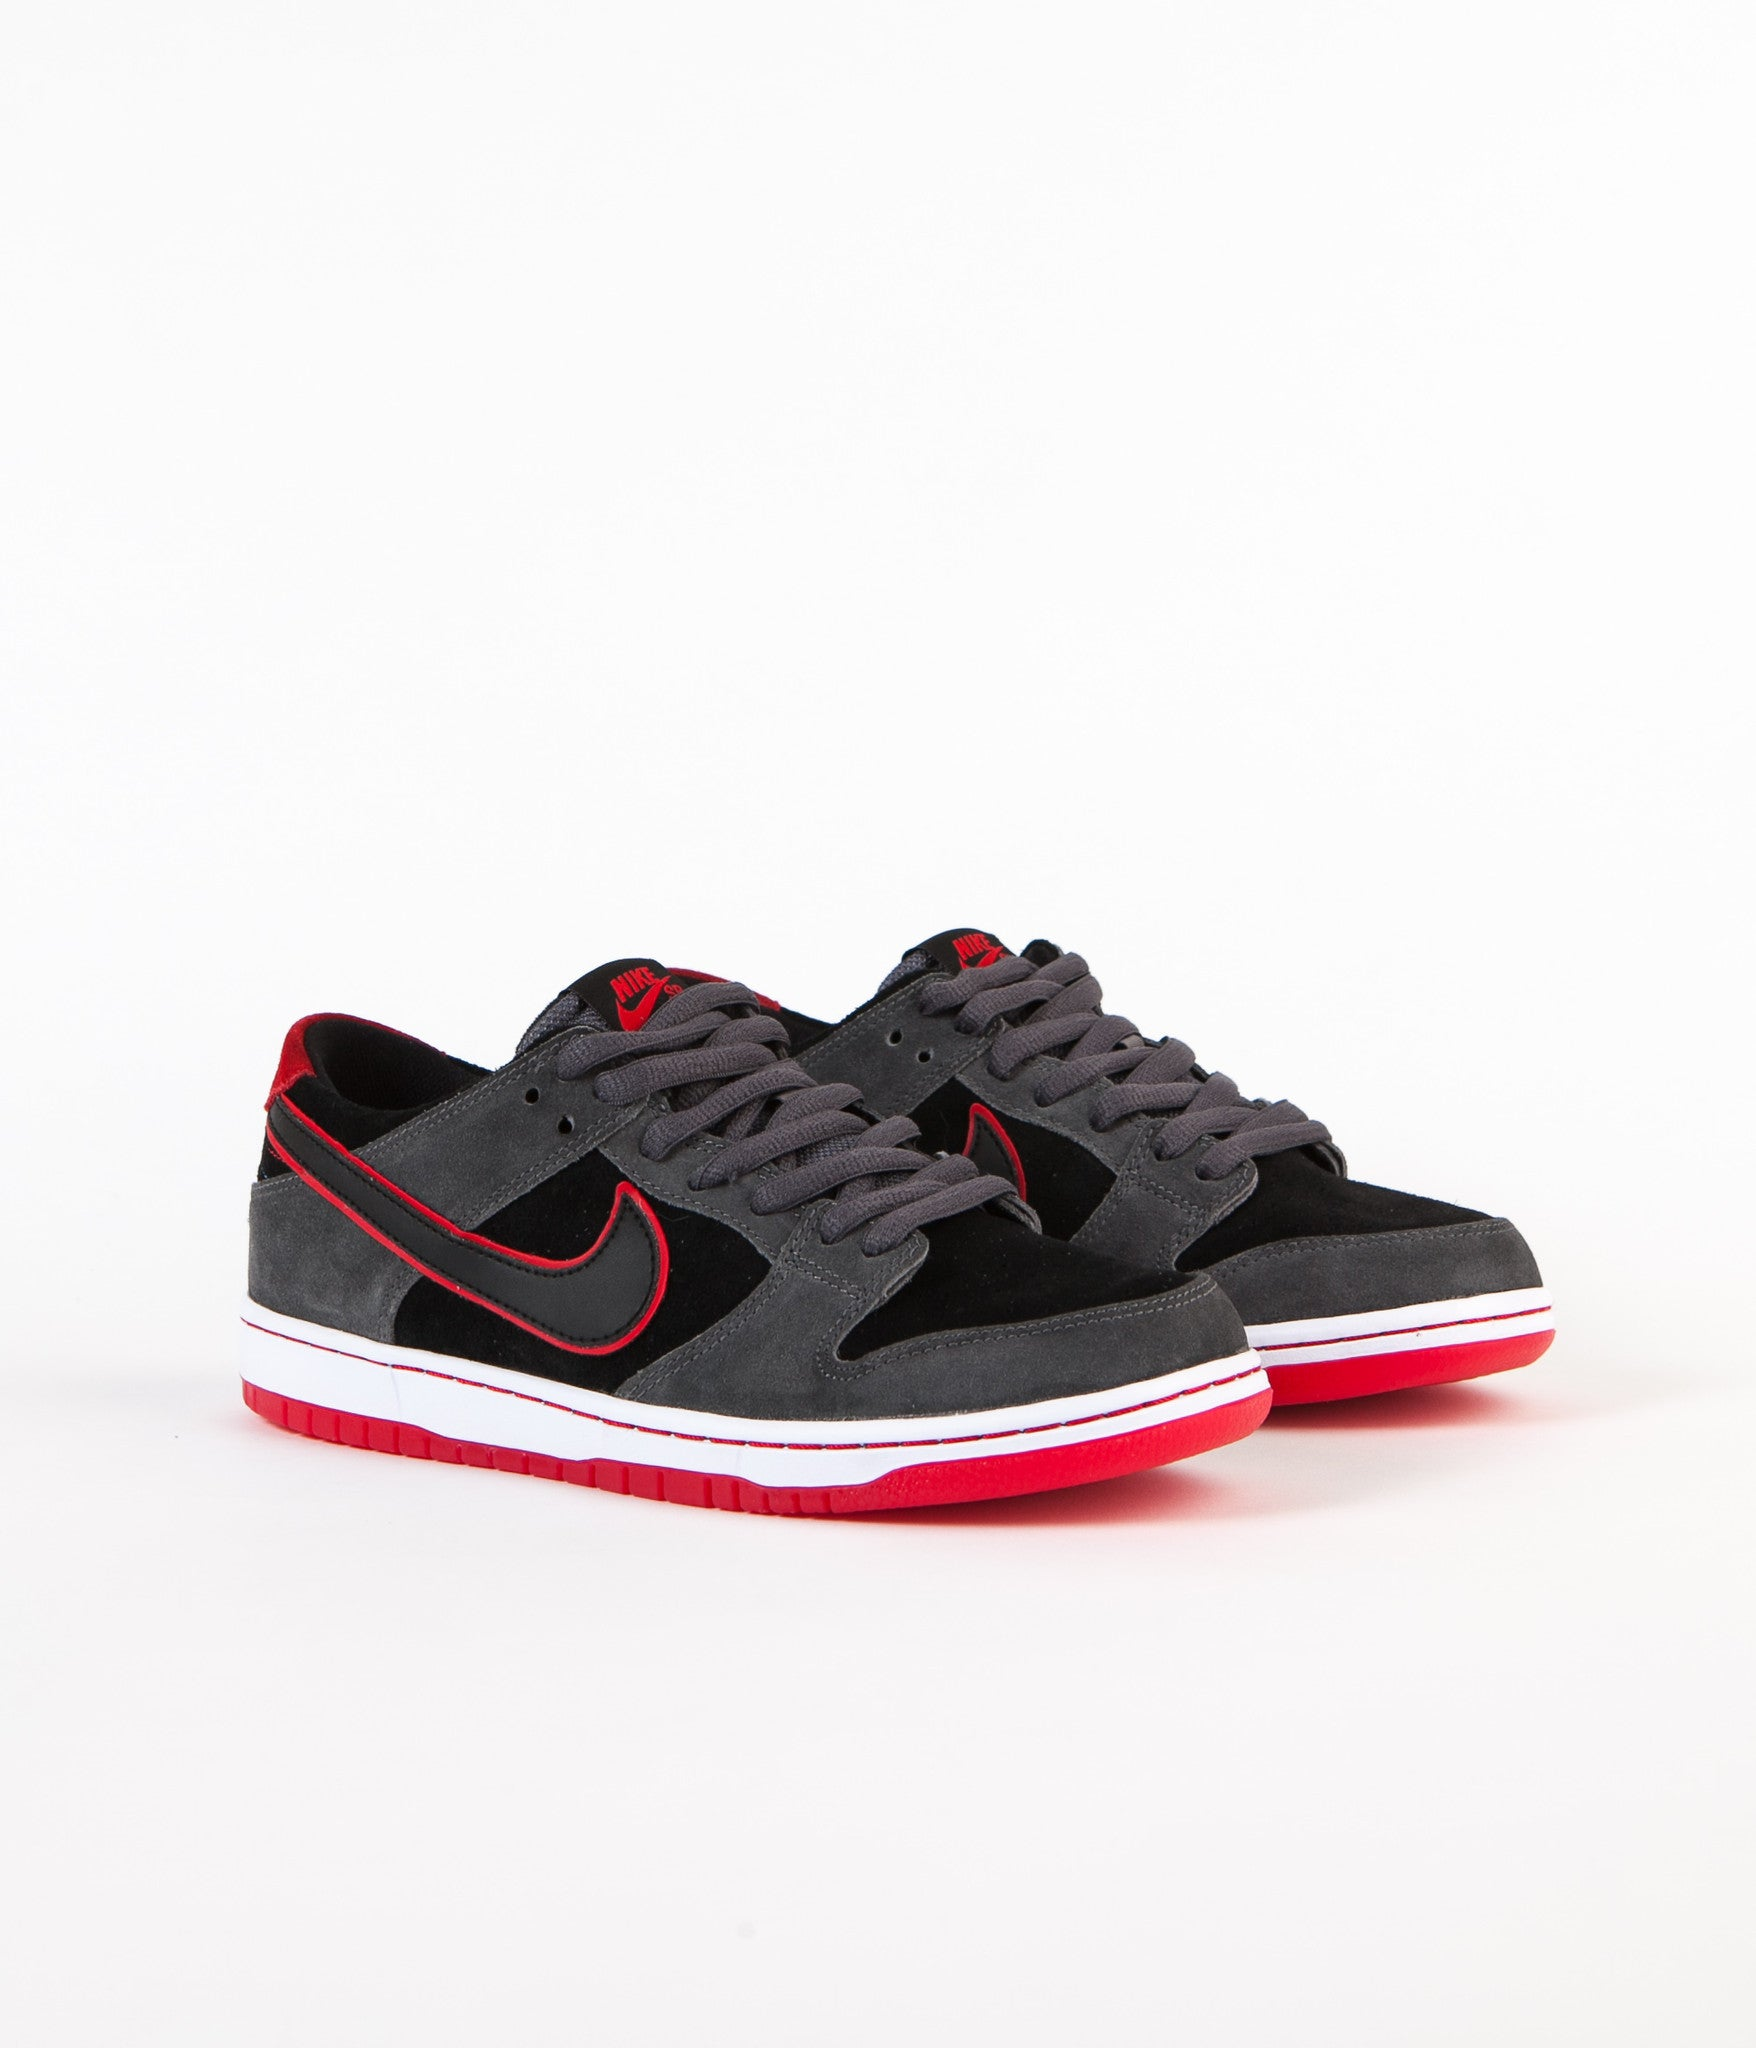 f93f61d6fea ... wholesale nike sb dunk low pro ishod wair shoes dark grey black  university red 21fcb b6bae